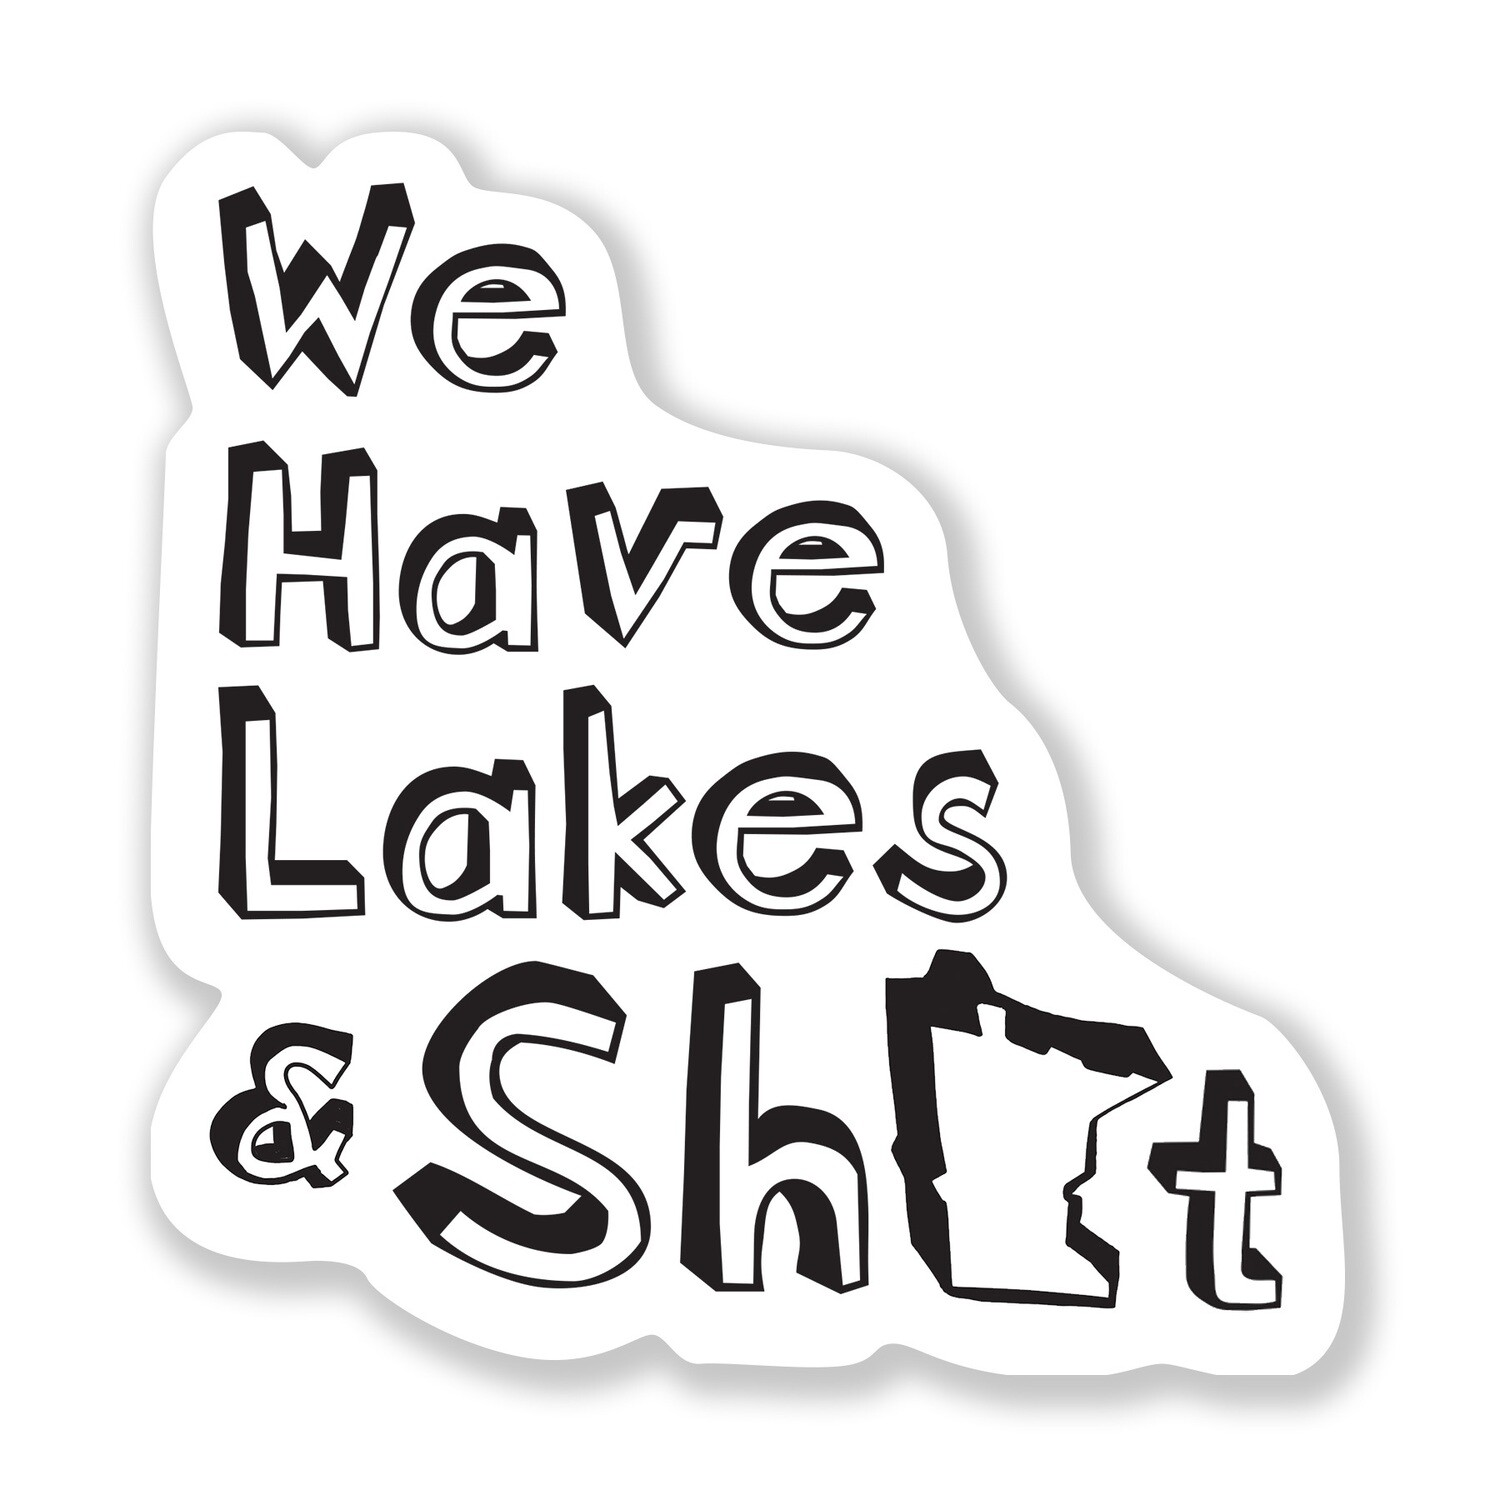 We Have Lakes - MN Sticker